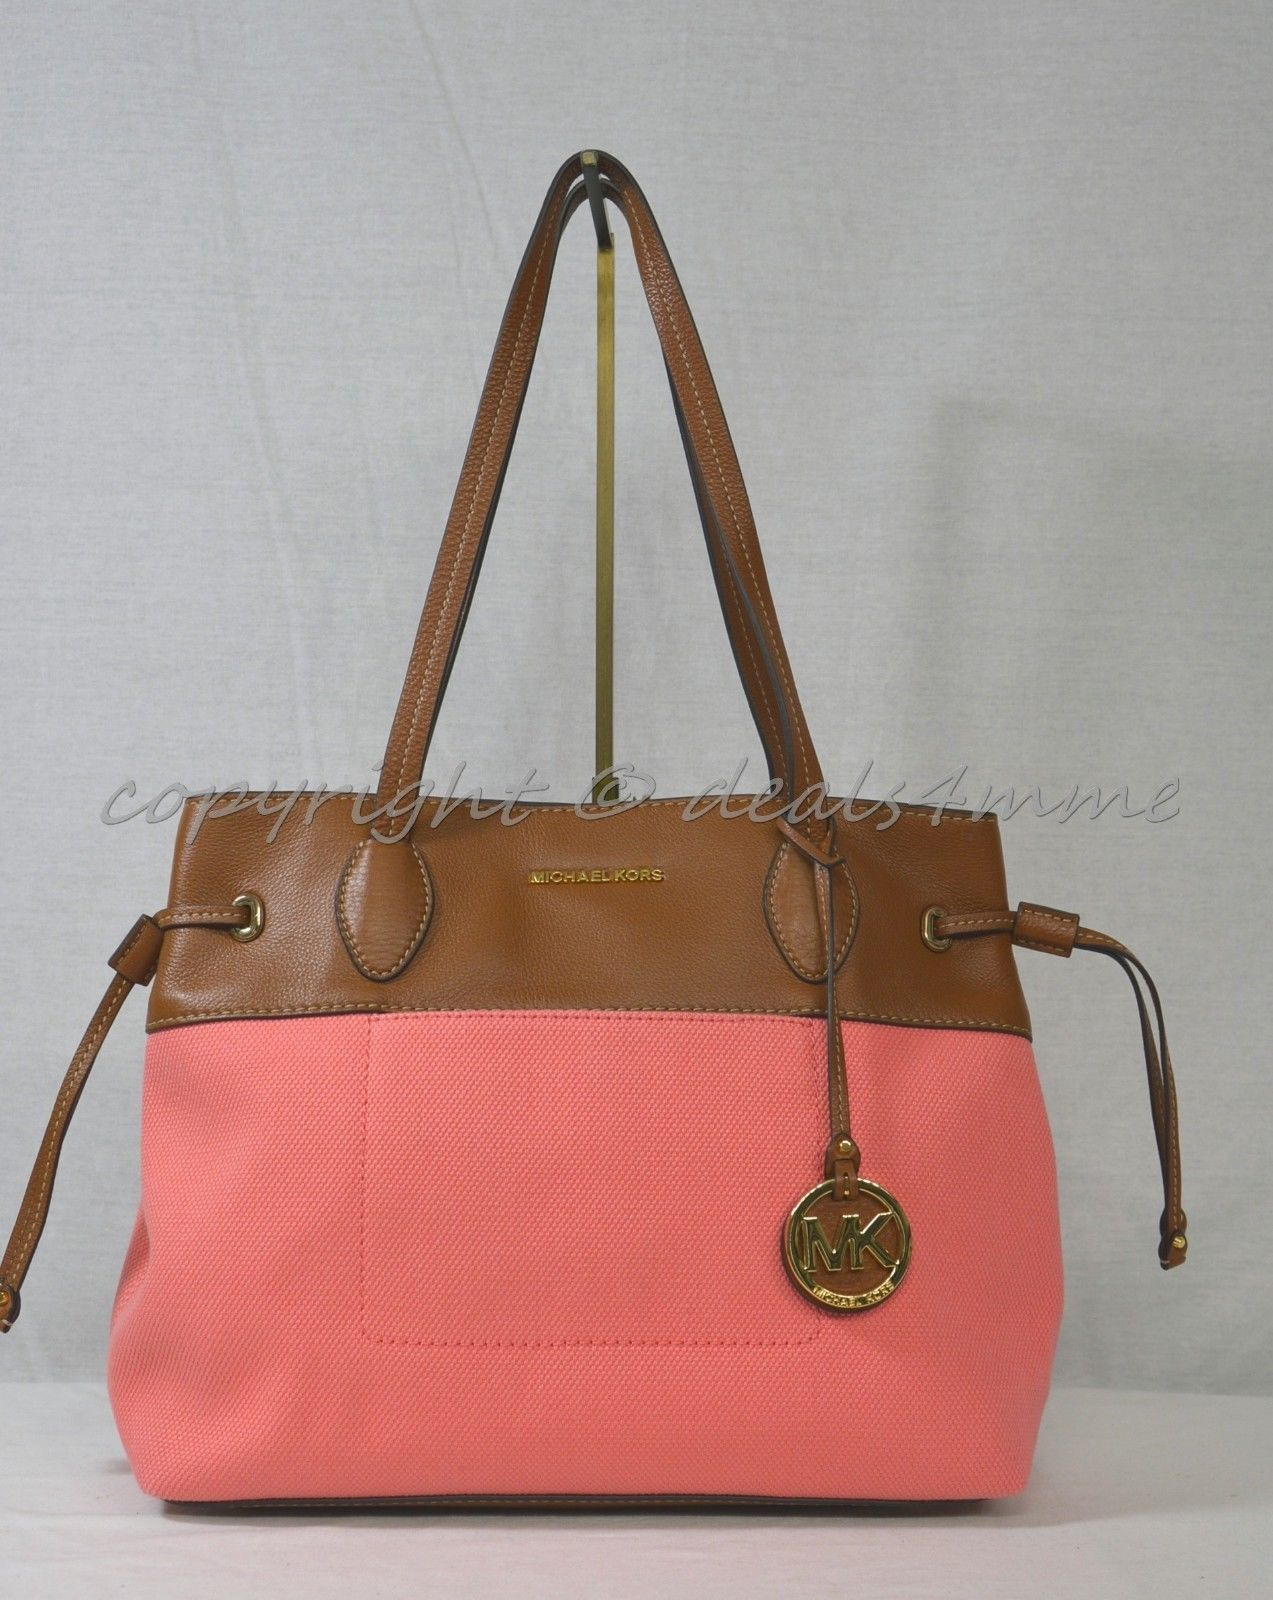 14e0d24620f6 Michael Kors Marina East West and 50 similar items. S l1600